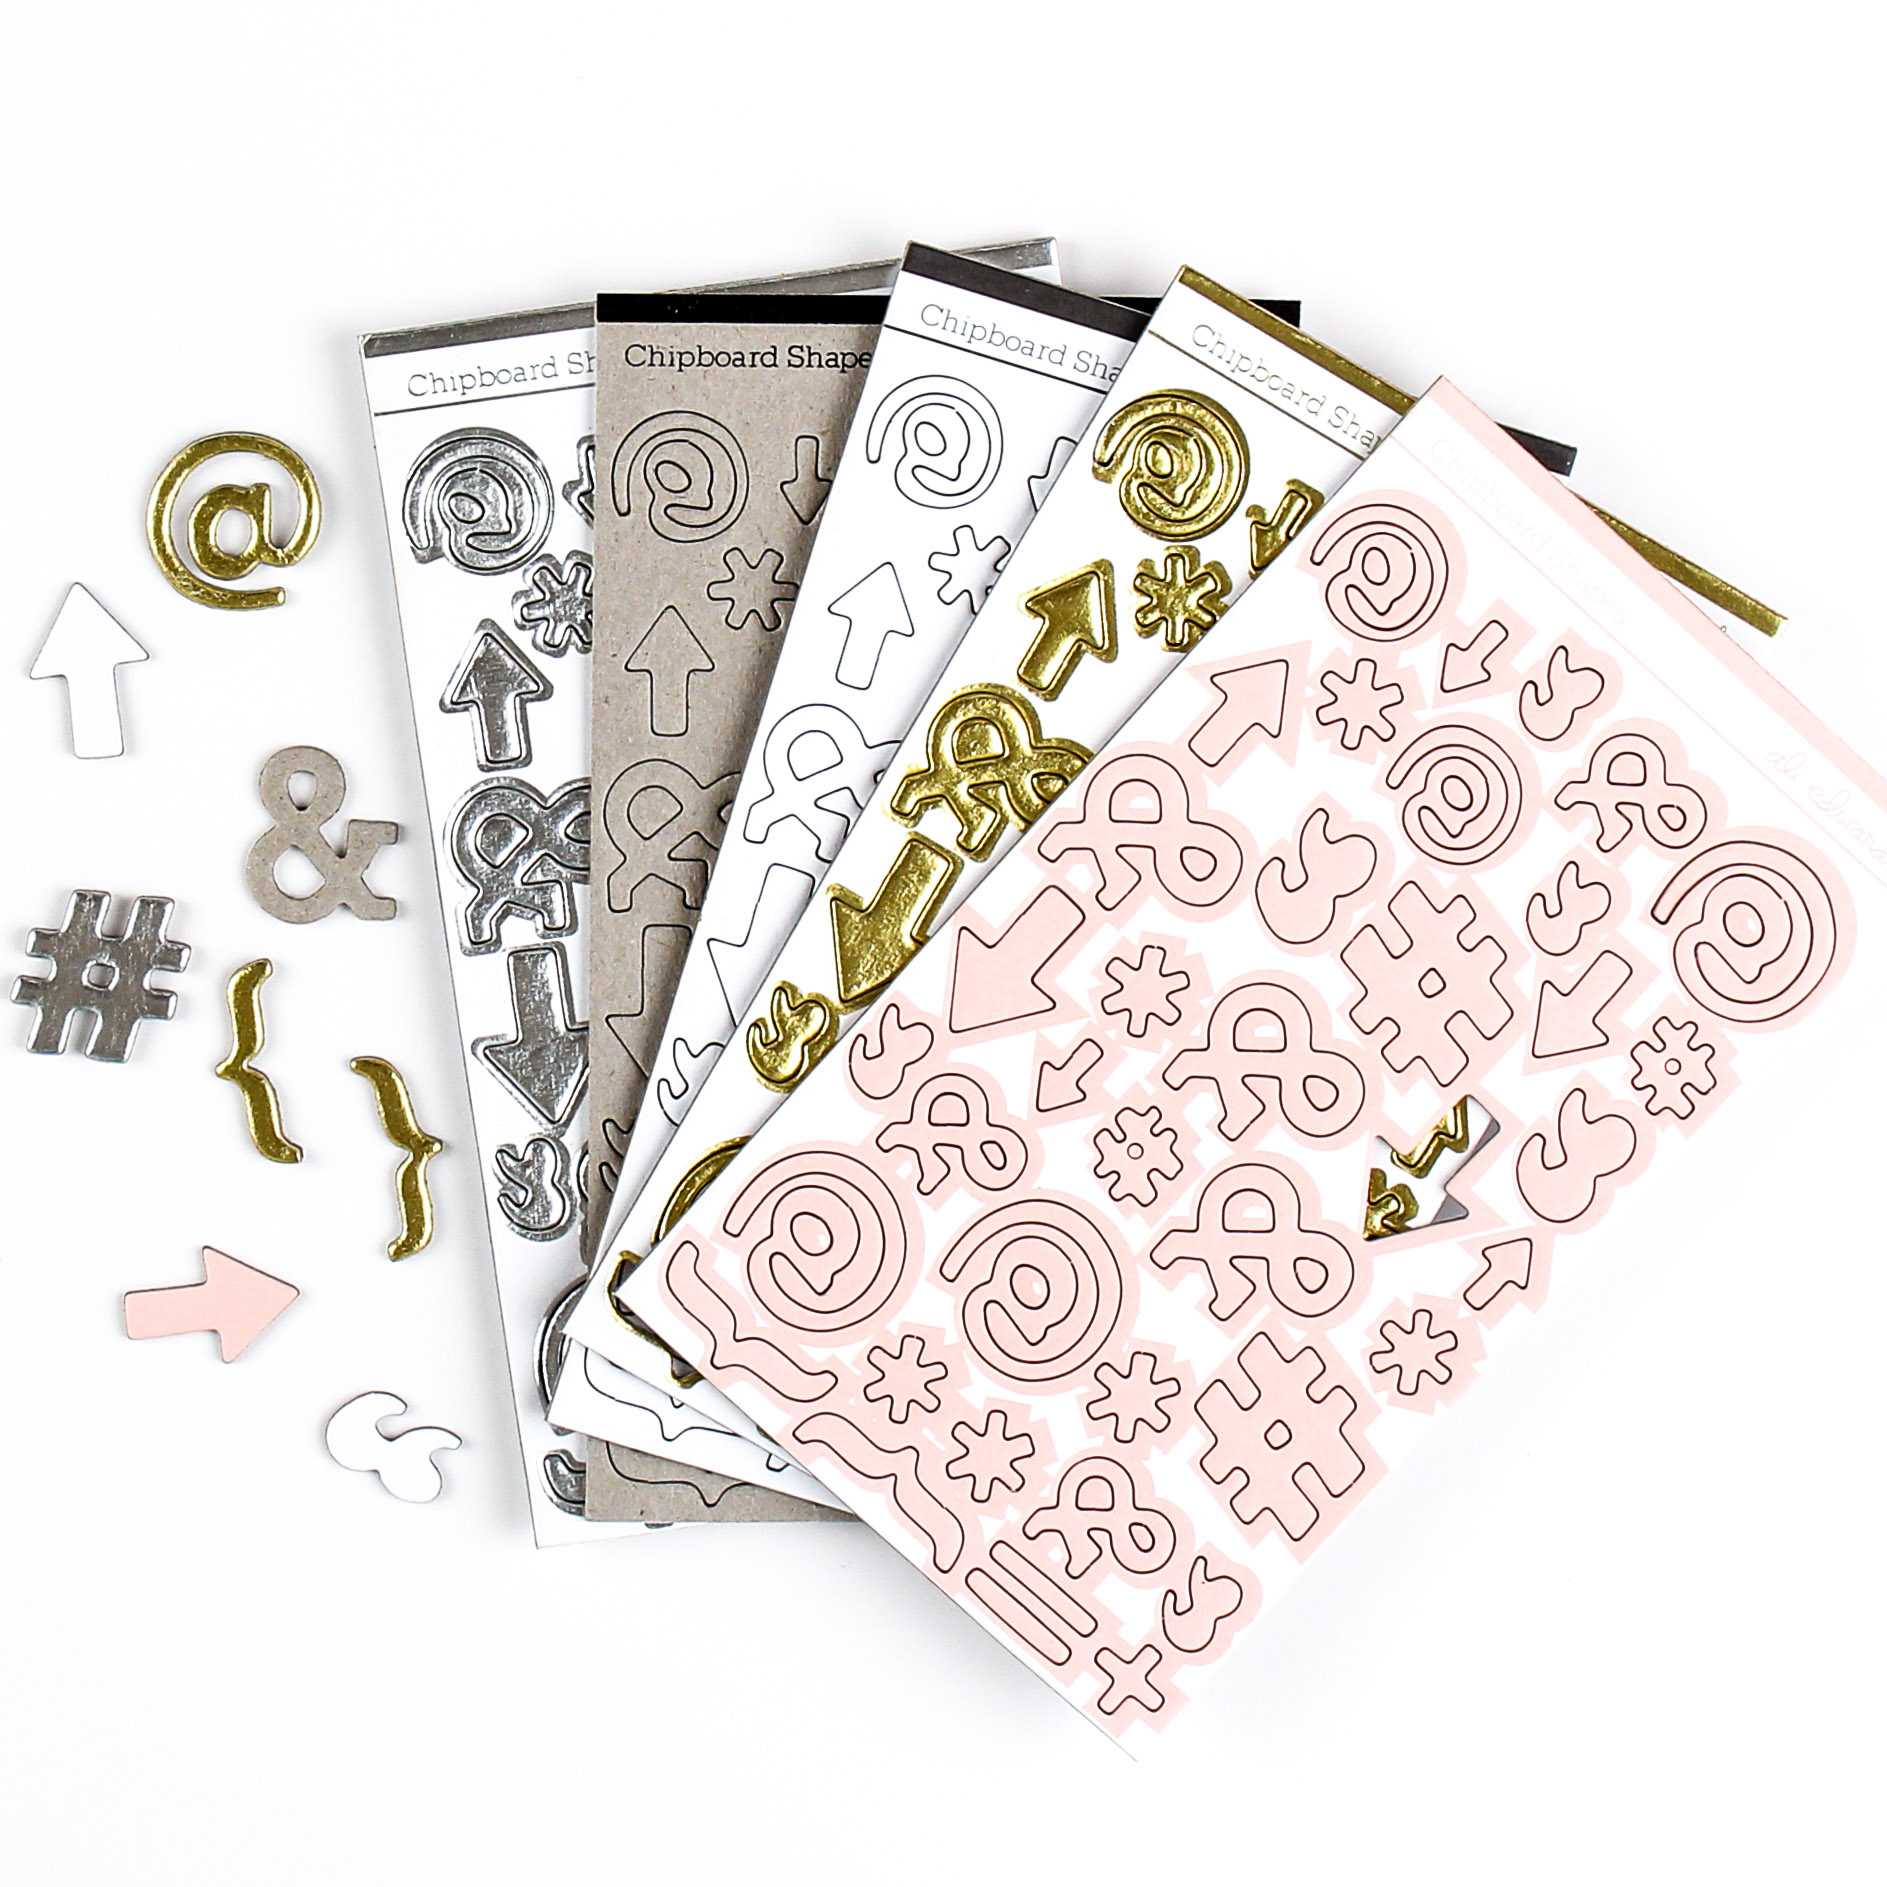 Chipboard Shapes Ideas ~ Ali edwards design inc chipboard shapes mixed